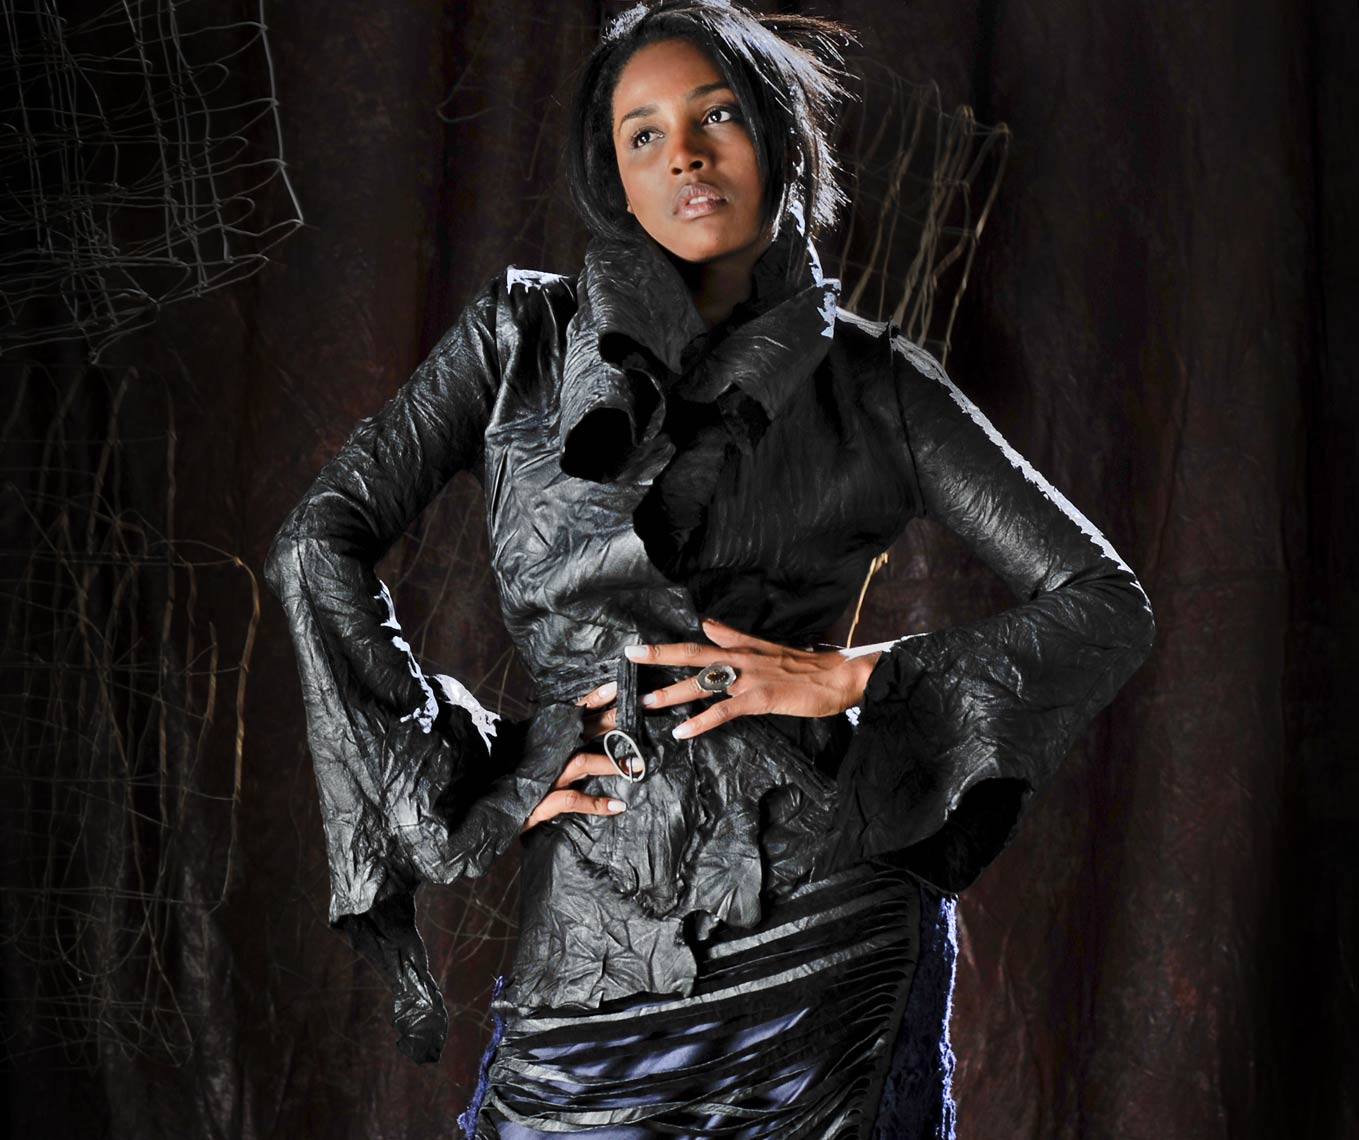 BLACL_LEATHER_JACKET_WEB4377.jpg